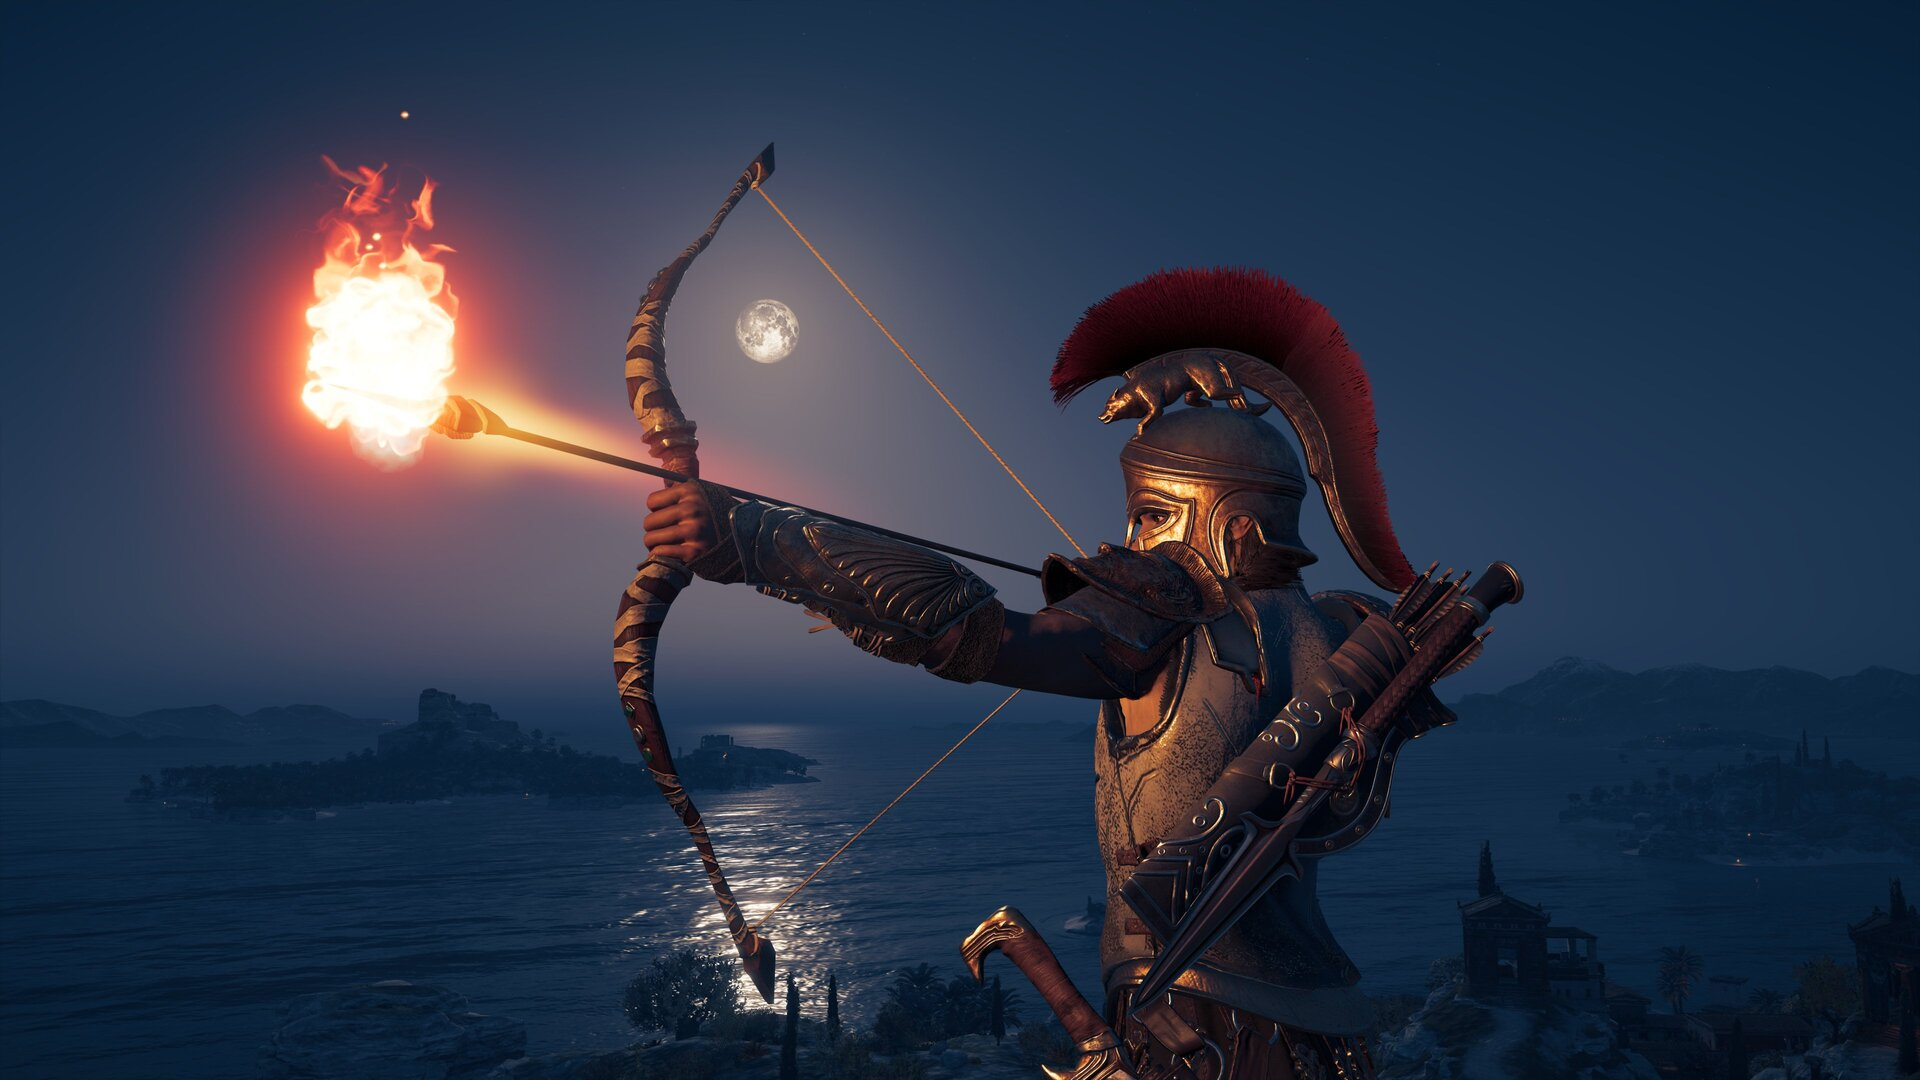 1920x1080 4k Assassins Creed Odyssey Bow And Arrow Laptop Full Hd 1080p Hd 4k Wallpapers Images Backgrounds Photos And Pictures